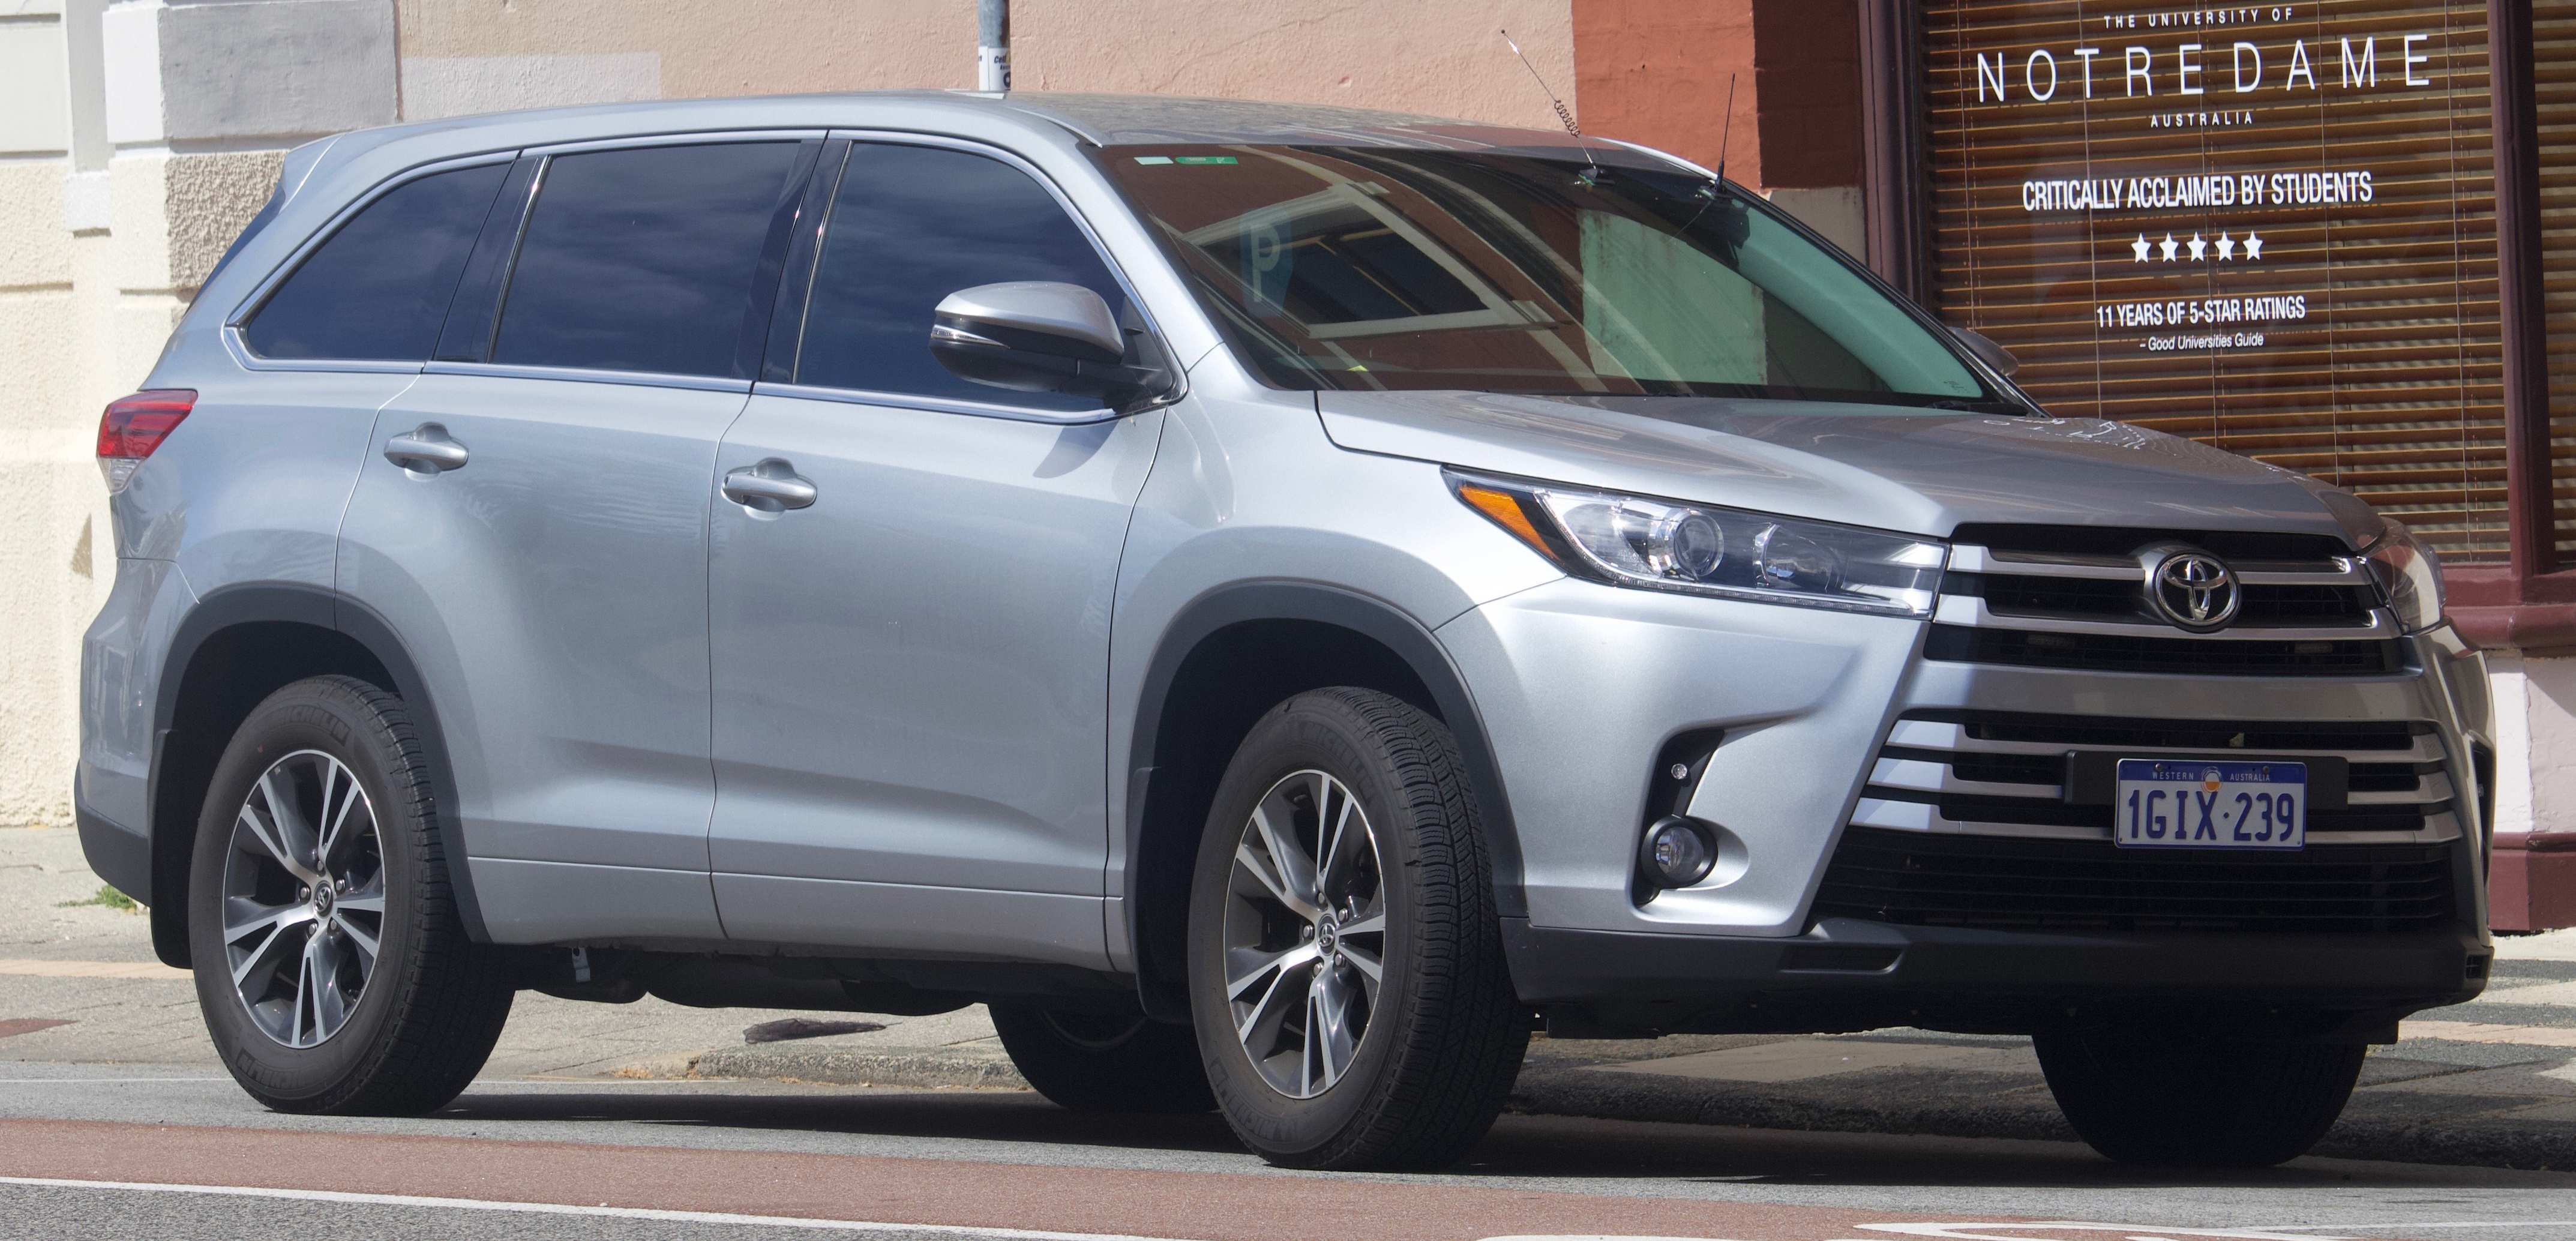 14 New Toyota Kluger 2020 Price History for Toyota Kluger 2020 Price